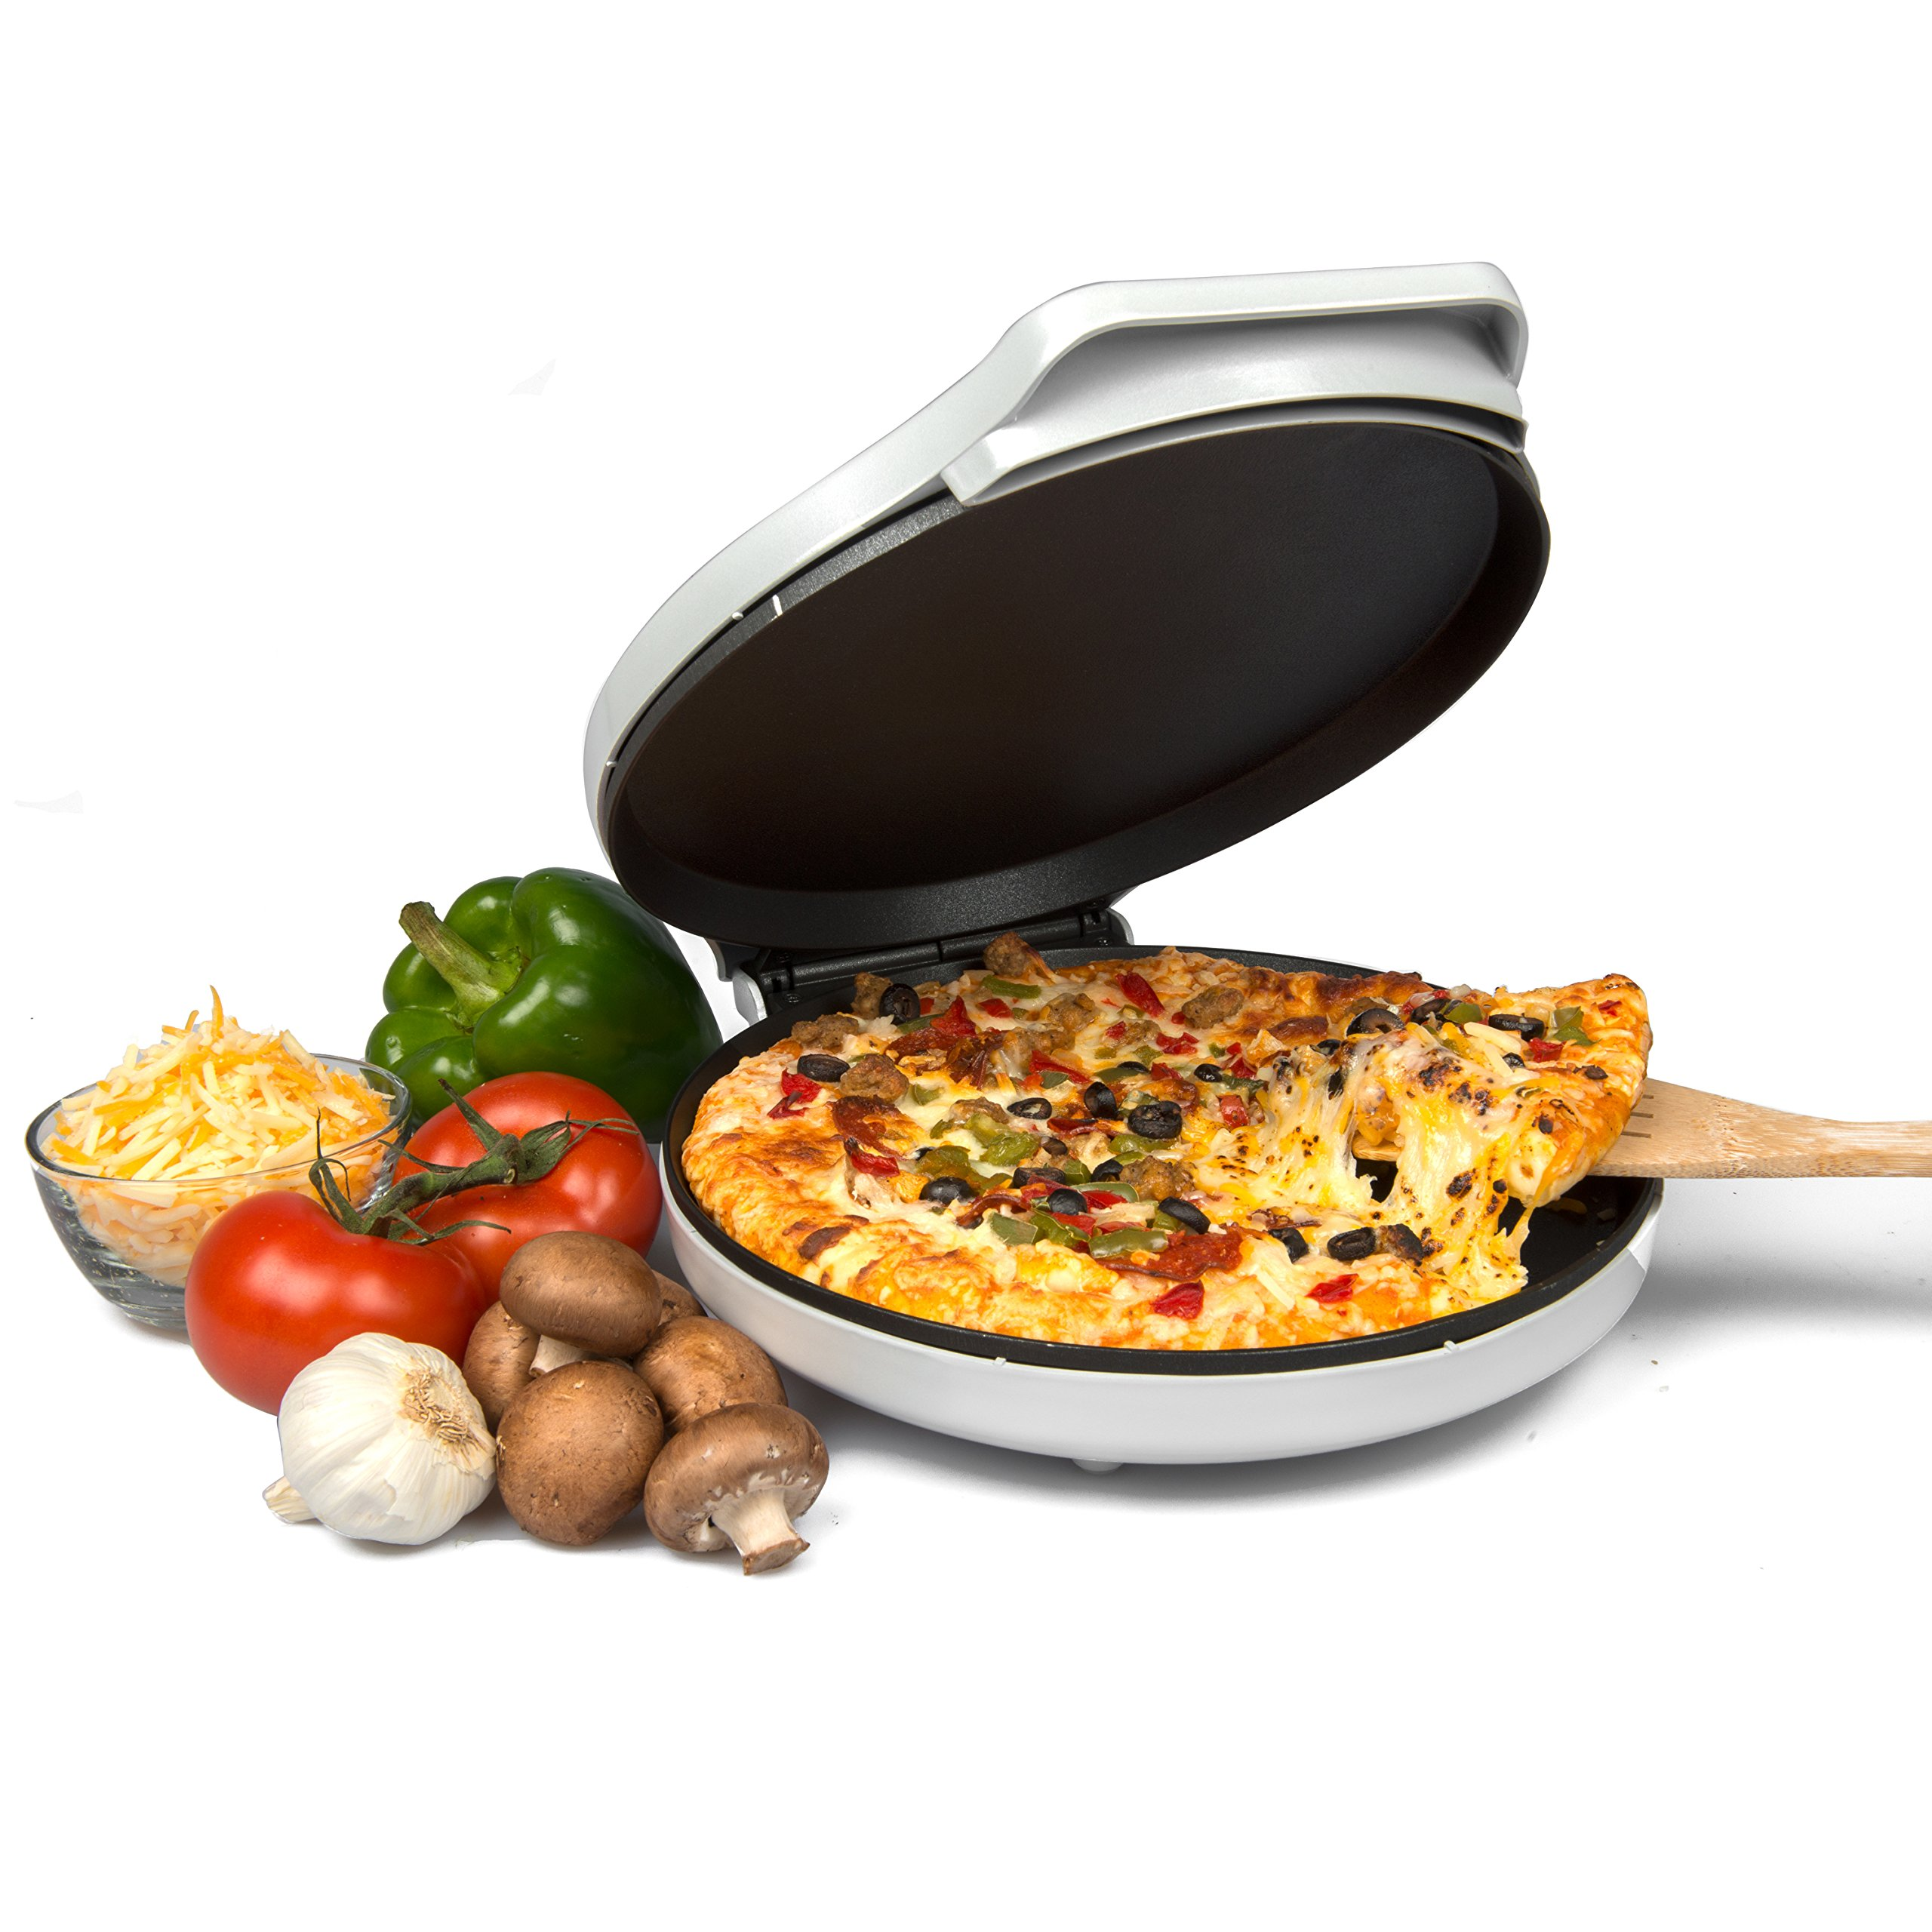 CucinaPro Pizza Maker and Everyday Baker - Electric Griddle Grill Pan Heats and Reheats in less than 2 minutes, White by CucinaPro (Image #4)